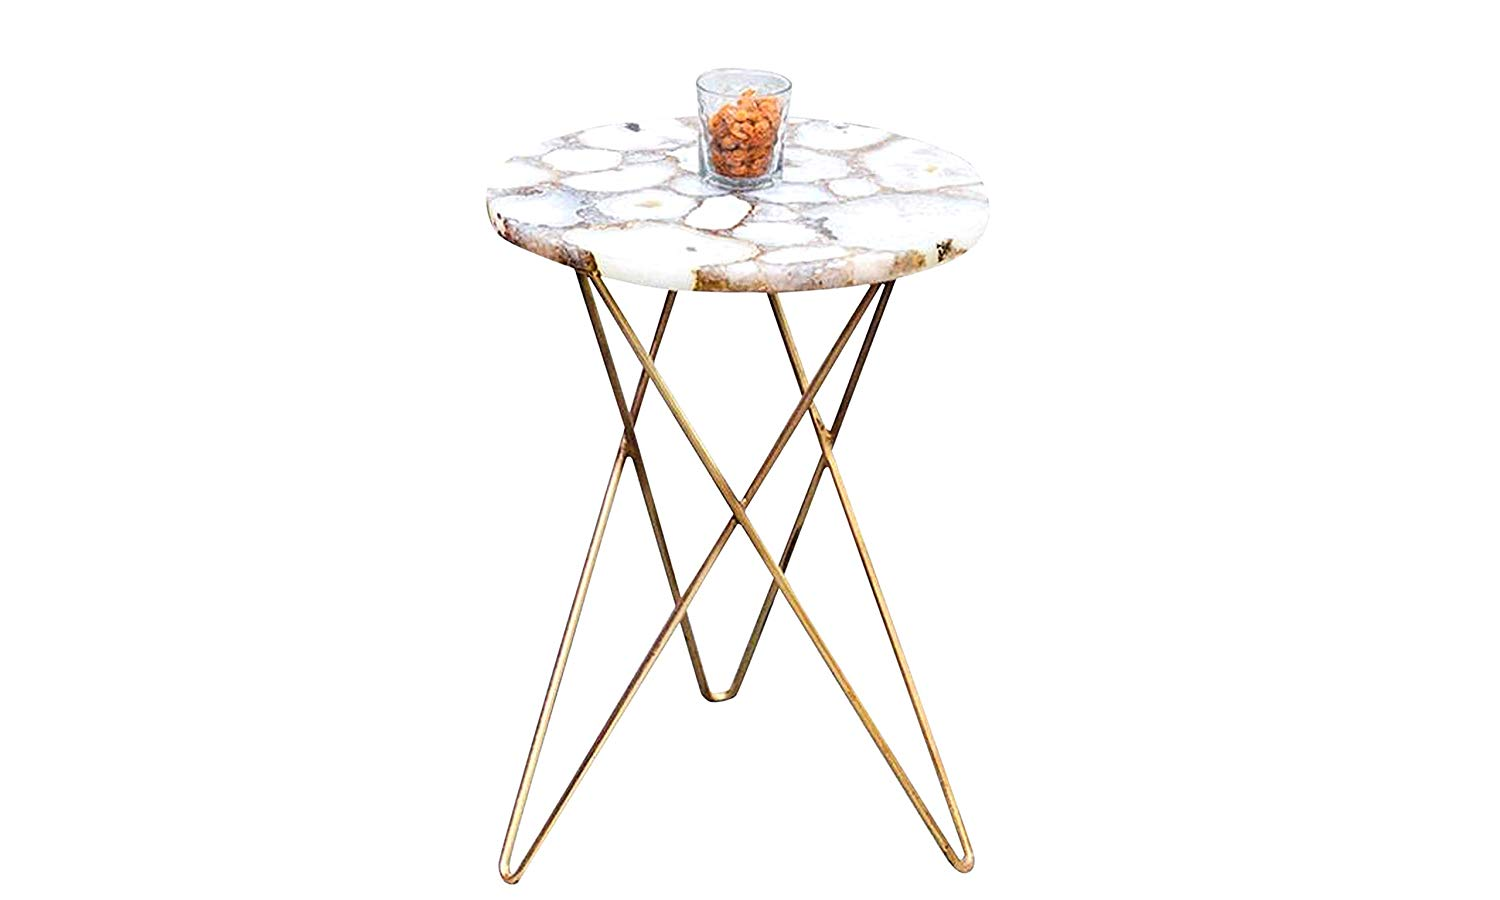 kross agate end table kitchen dining glass accent white round linens silver bedside lamps cupboards victorian side top lounge chairs leick desk outdoor coffee bunnings living room